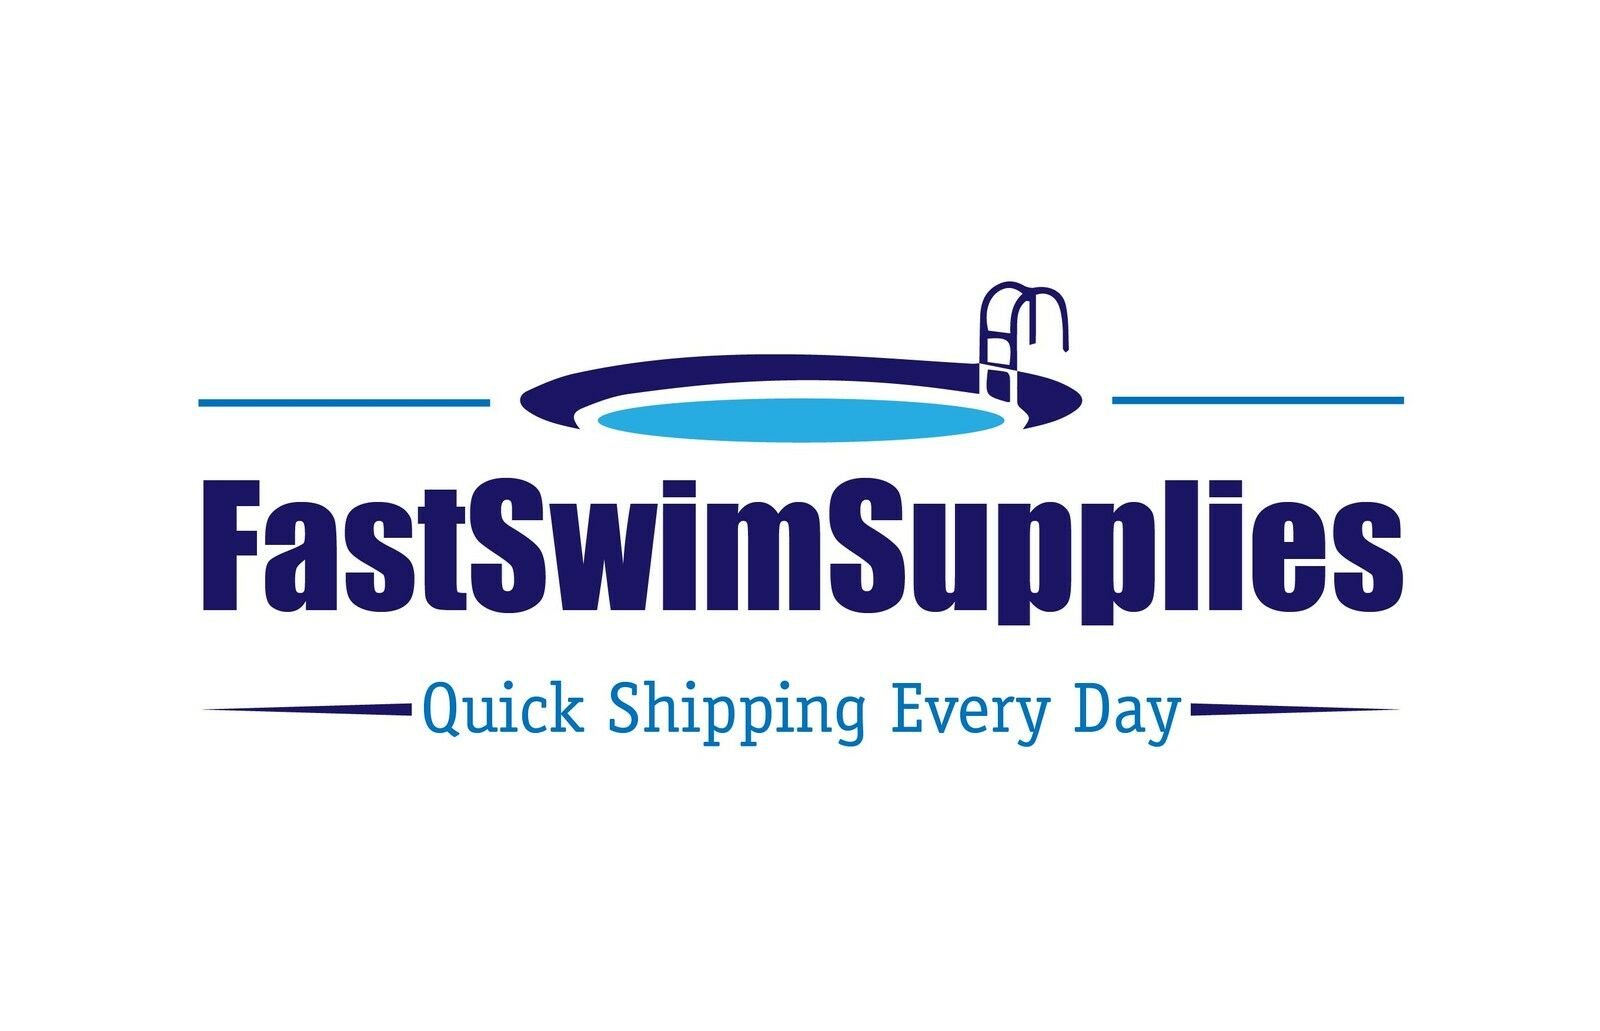 fastswimsupplies